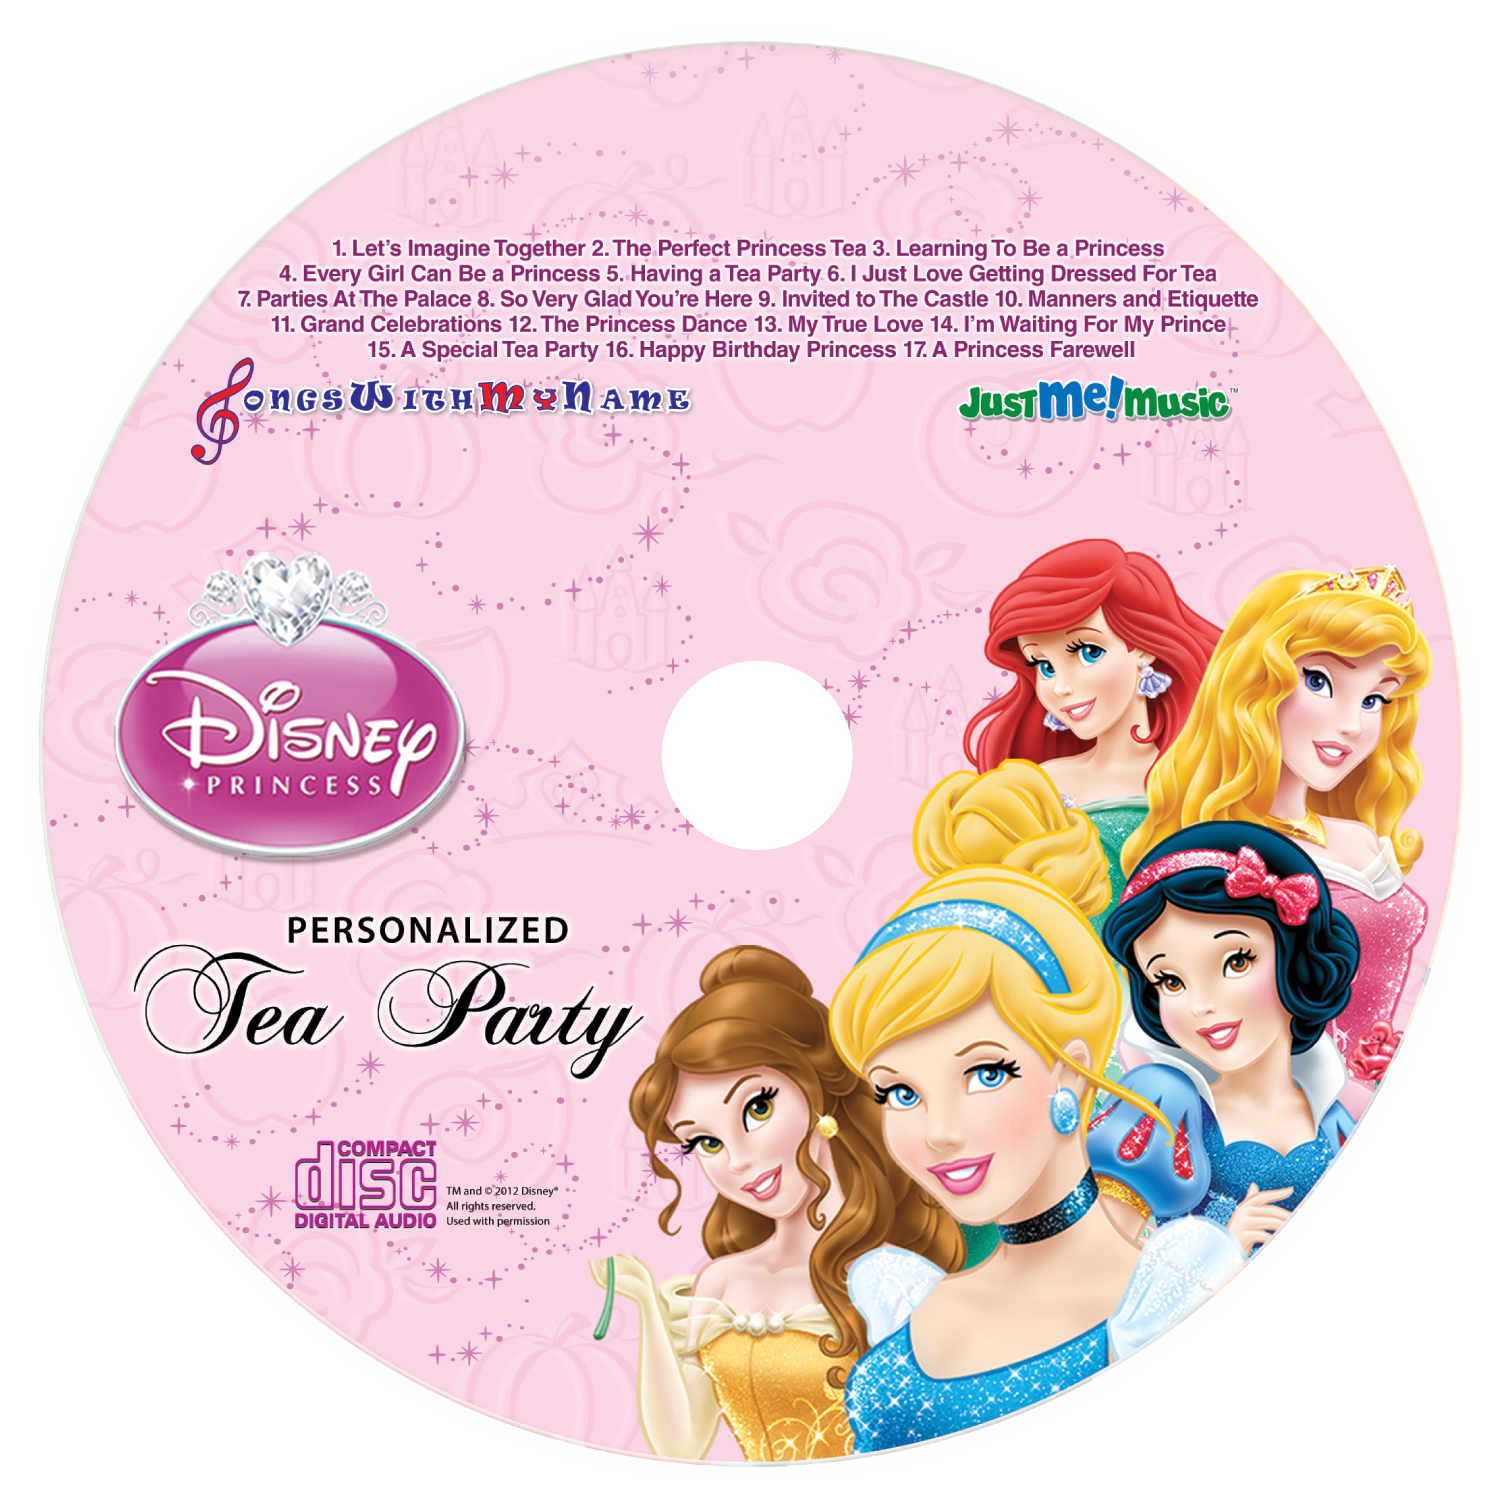 all the princess songs